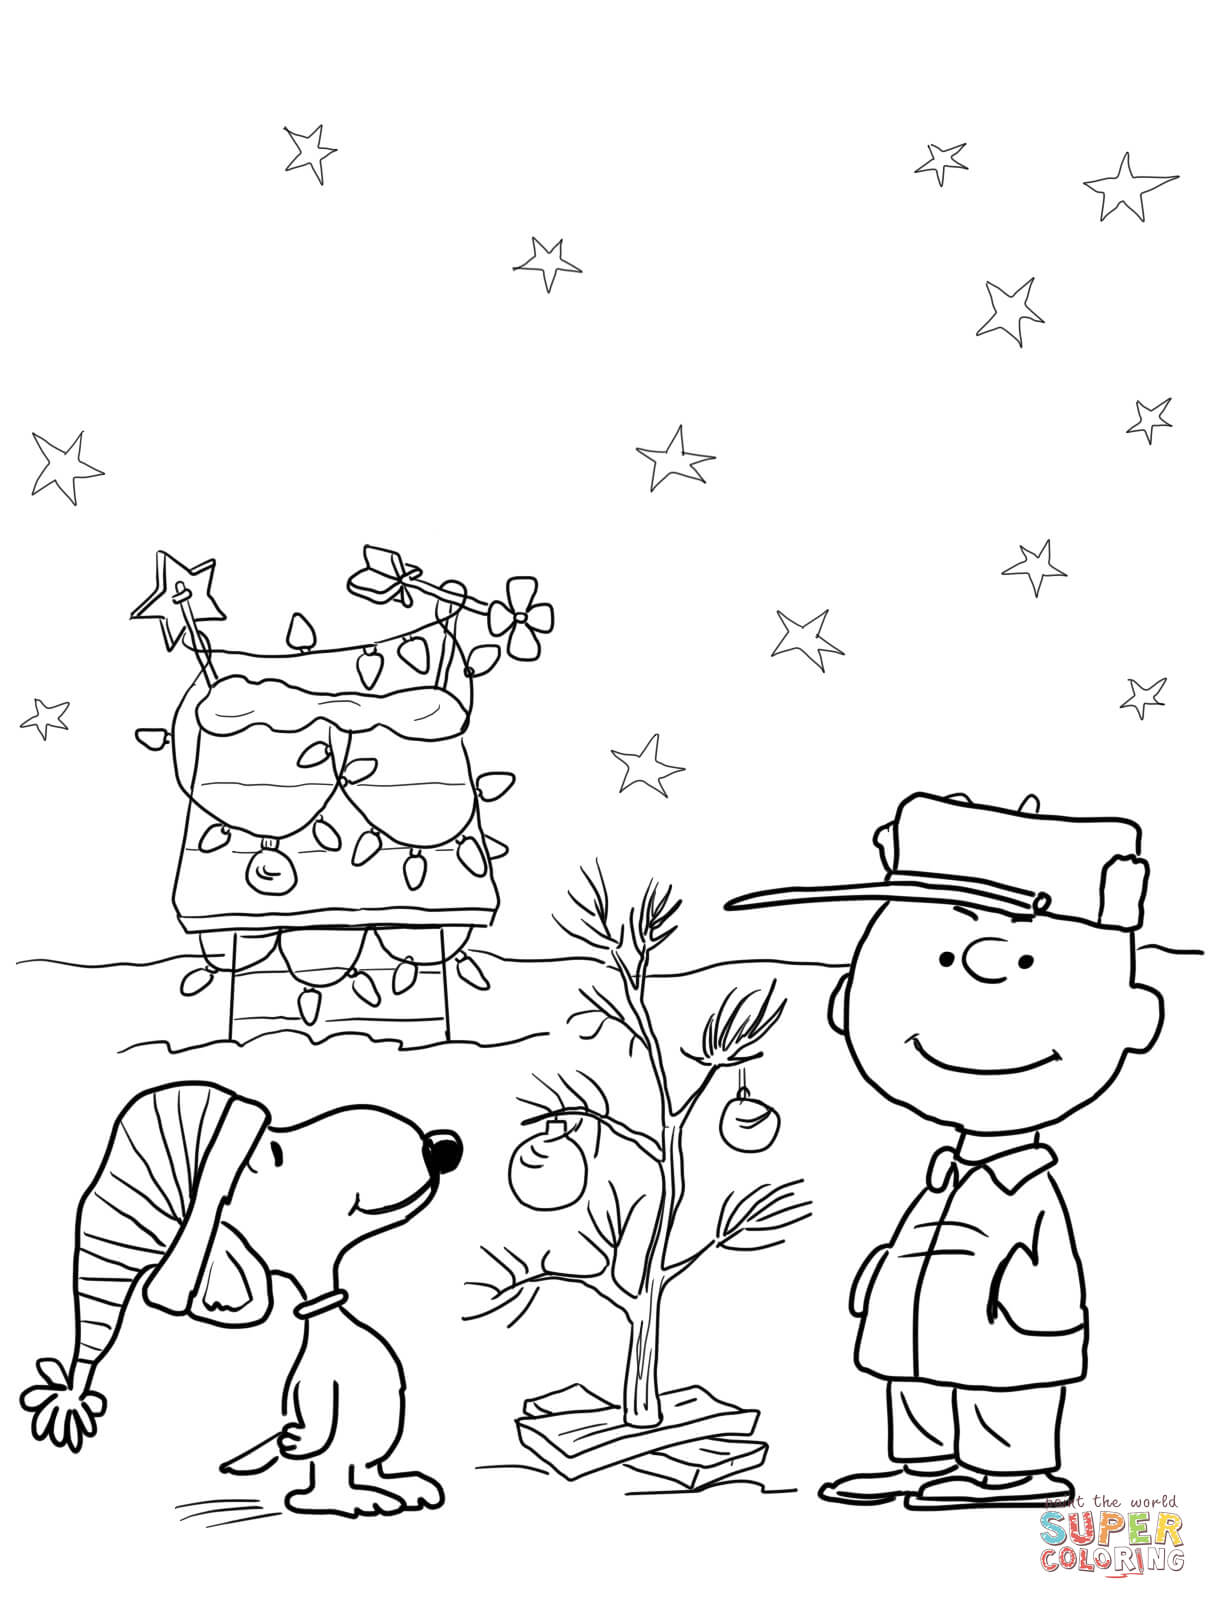 Christmas Coloring Pages Free To Print With Charlie Brown Page Printable